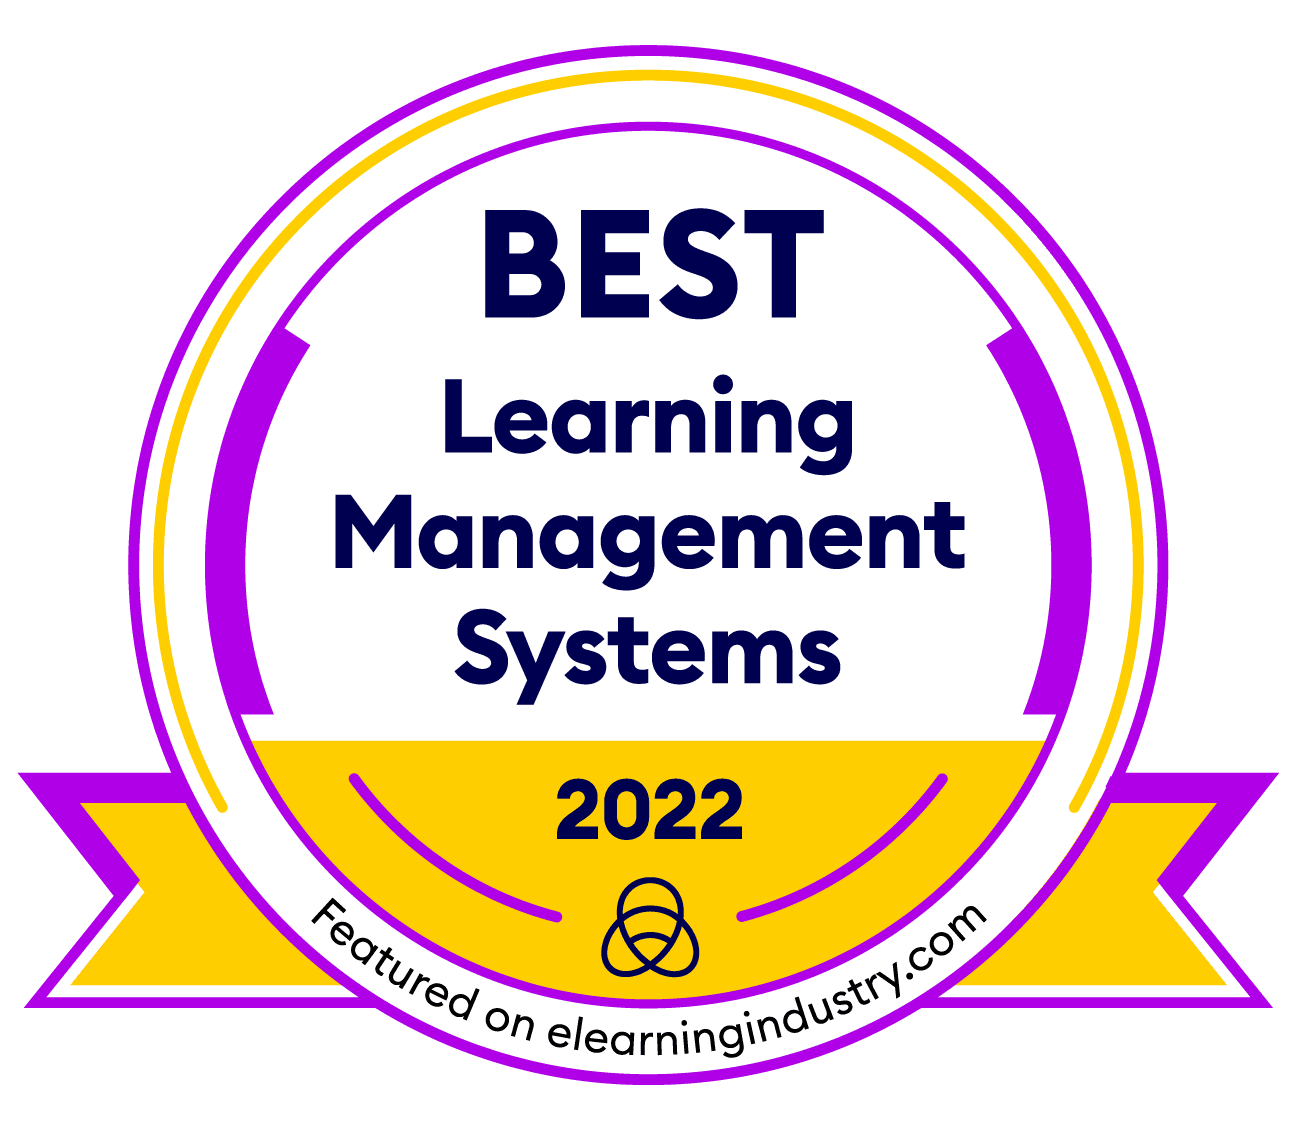 Best learning management systems award 2022